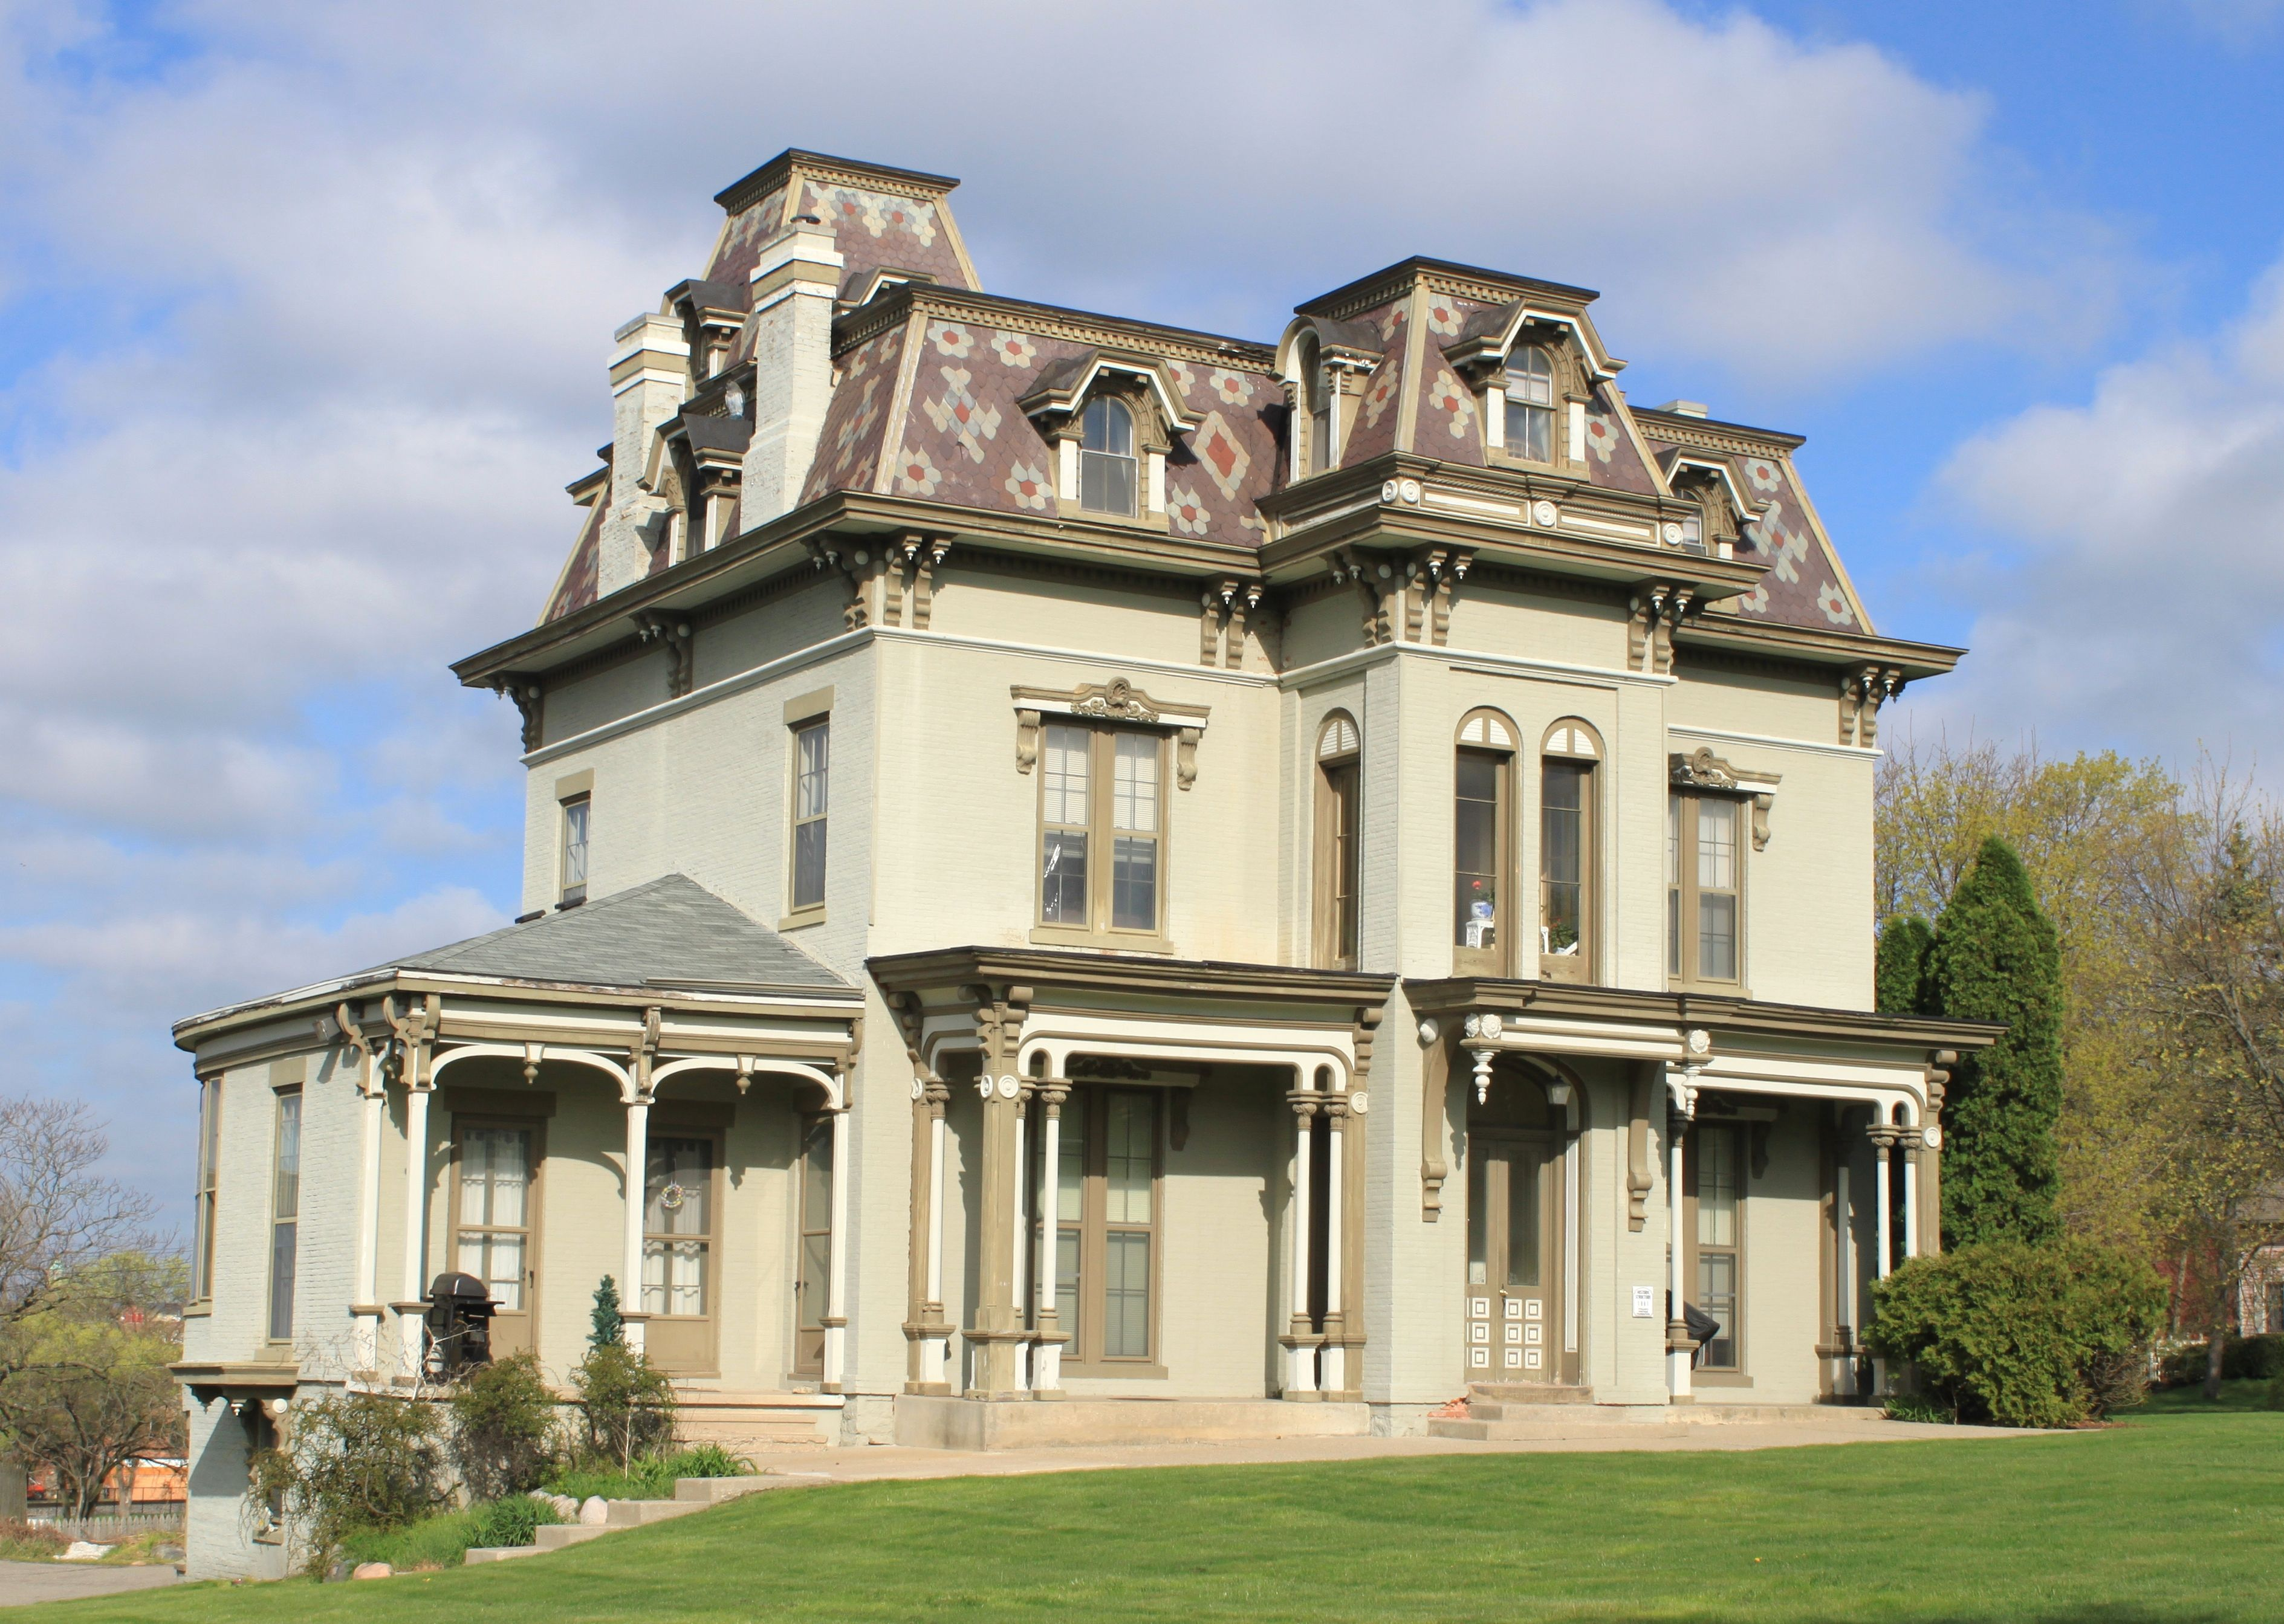 Real Estate Investing Get All The Facts About Creative Investing Today Wholesaling Real Estate Subject To More Mansions Victorian Homes Old Mansions